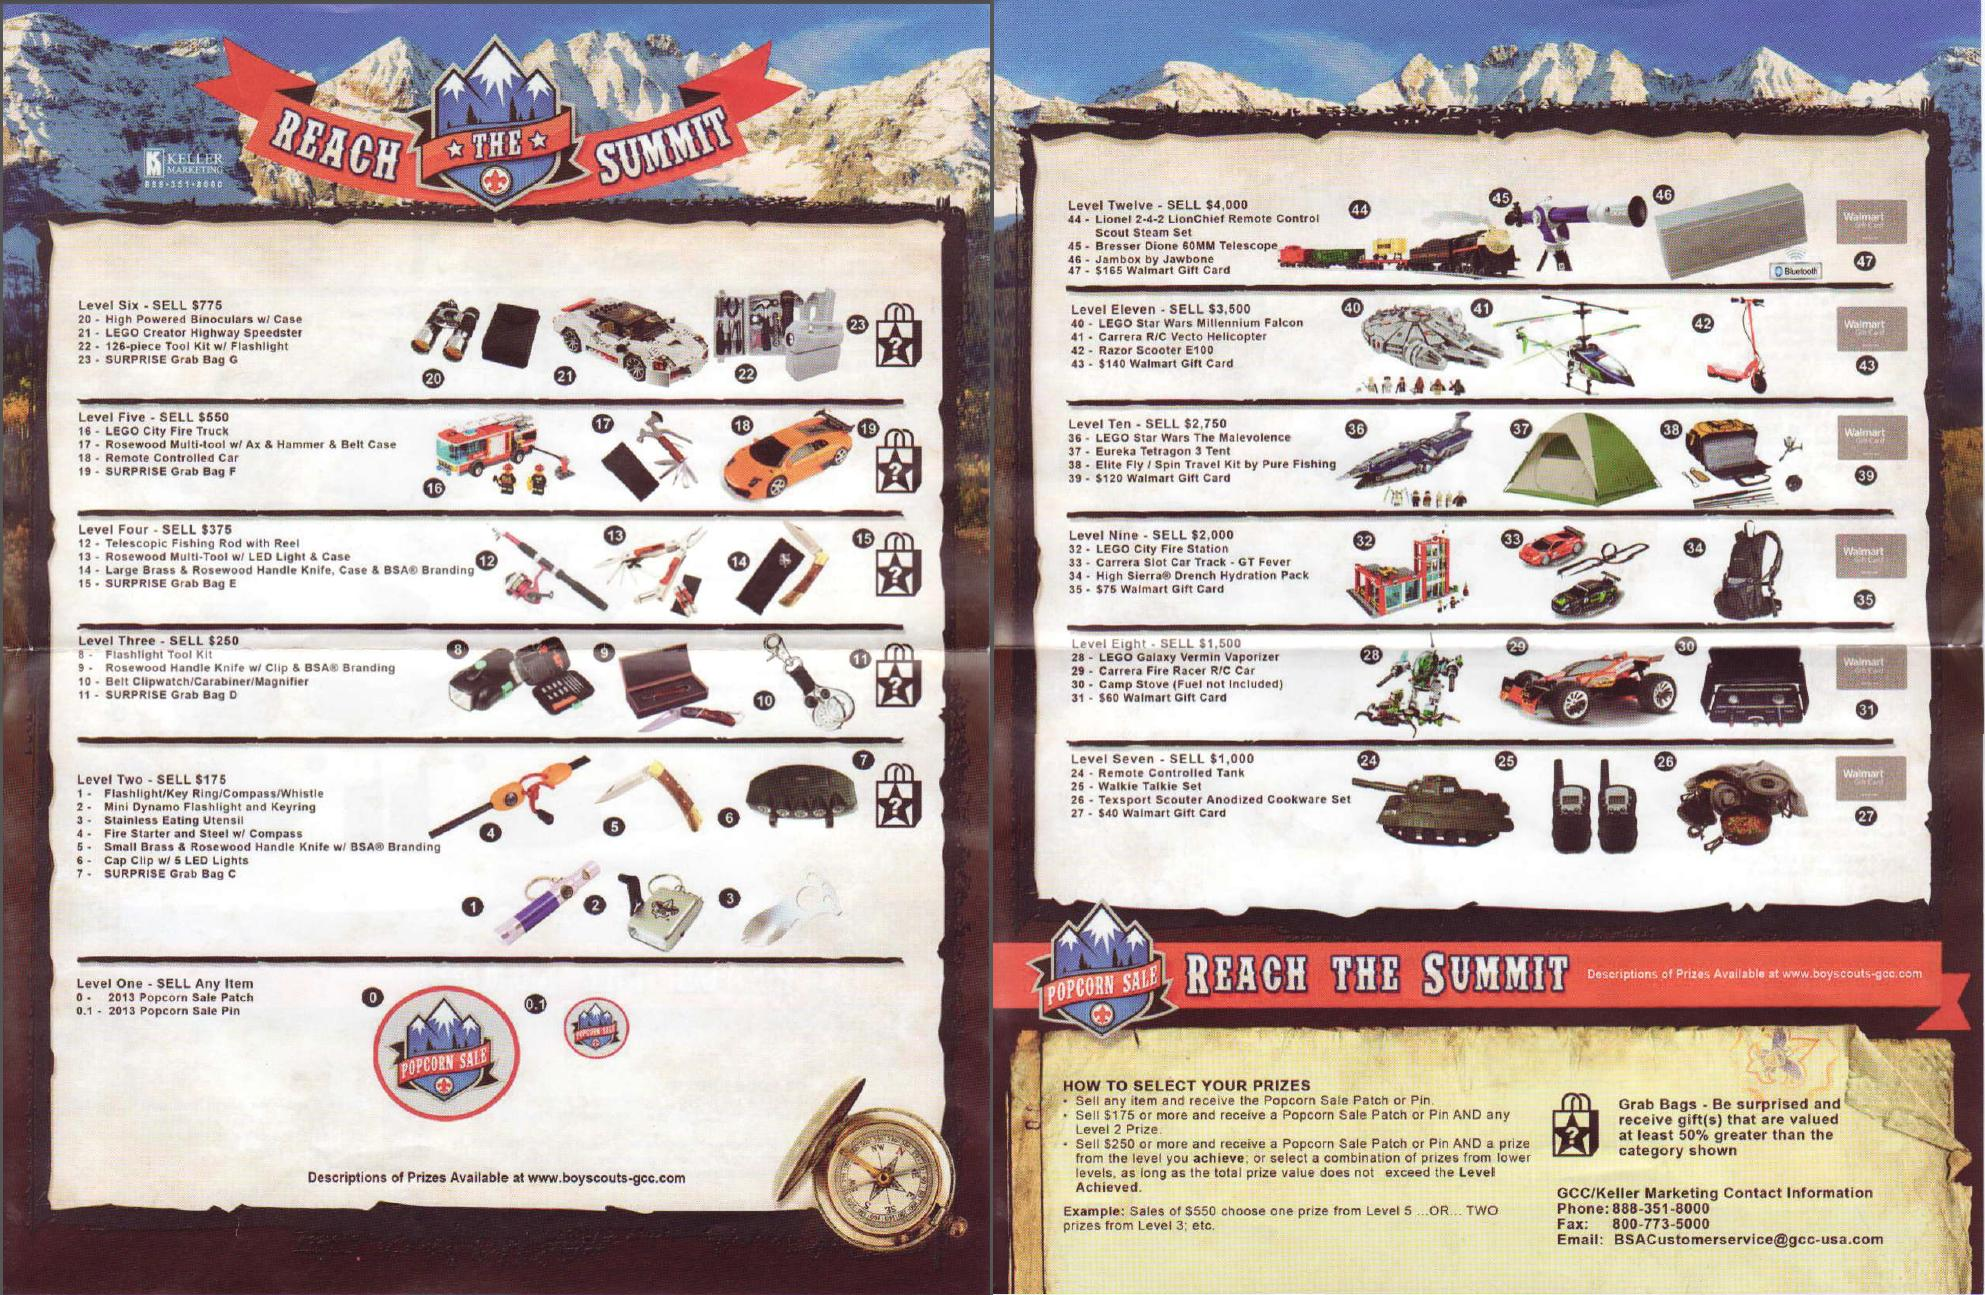 Why can't I find everything I saw in the Boy Scout catalog?